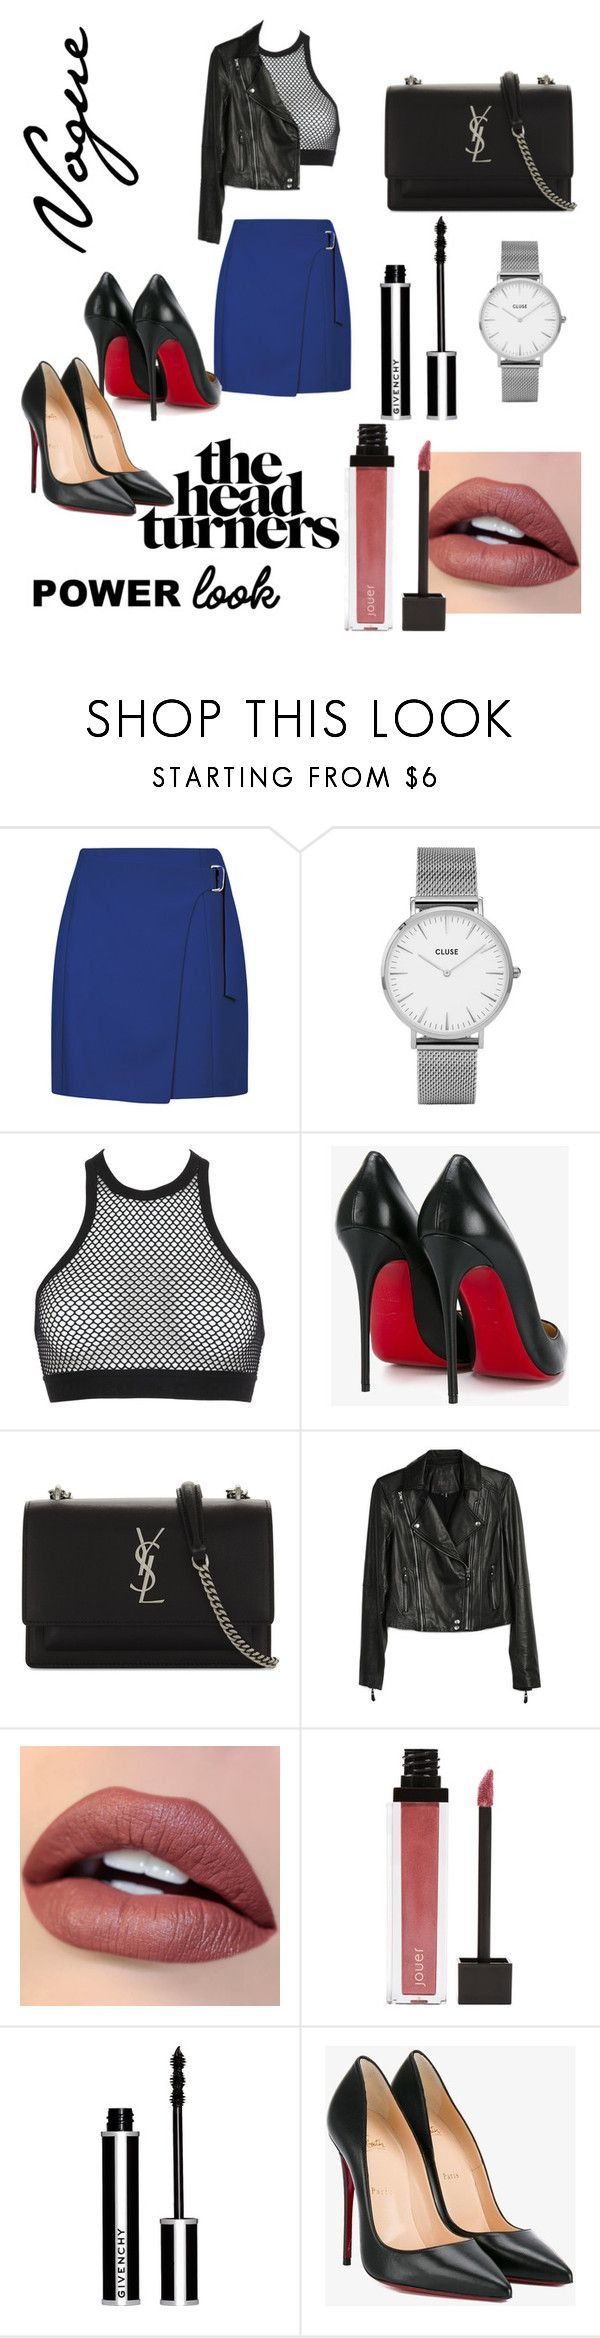 """""""My Power Look"""" by anamariahodinet on Polyvore featuring CLUSE, Dsquared2, Christian Louboutin, Yves Saint Laurent, Paige Denim, Jouer, Givenchy, polyvorecontest and powerlook"""